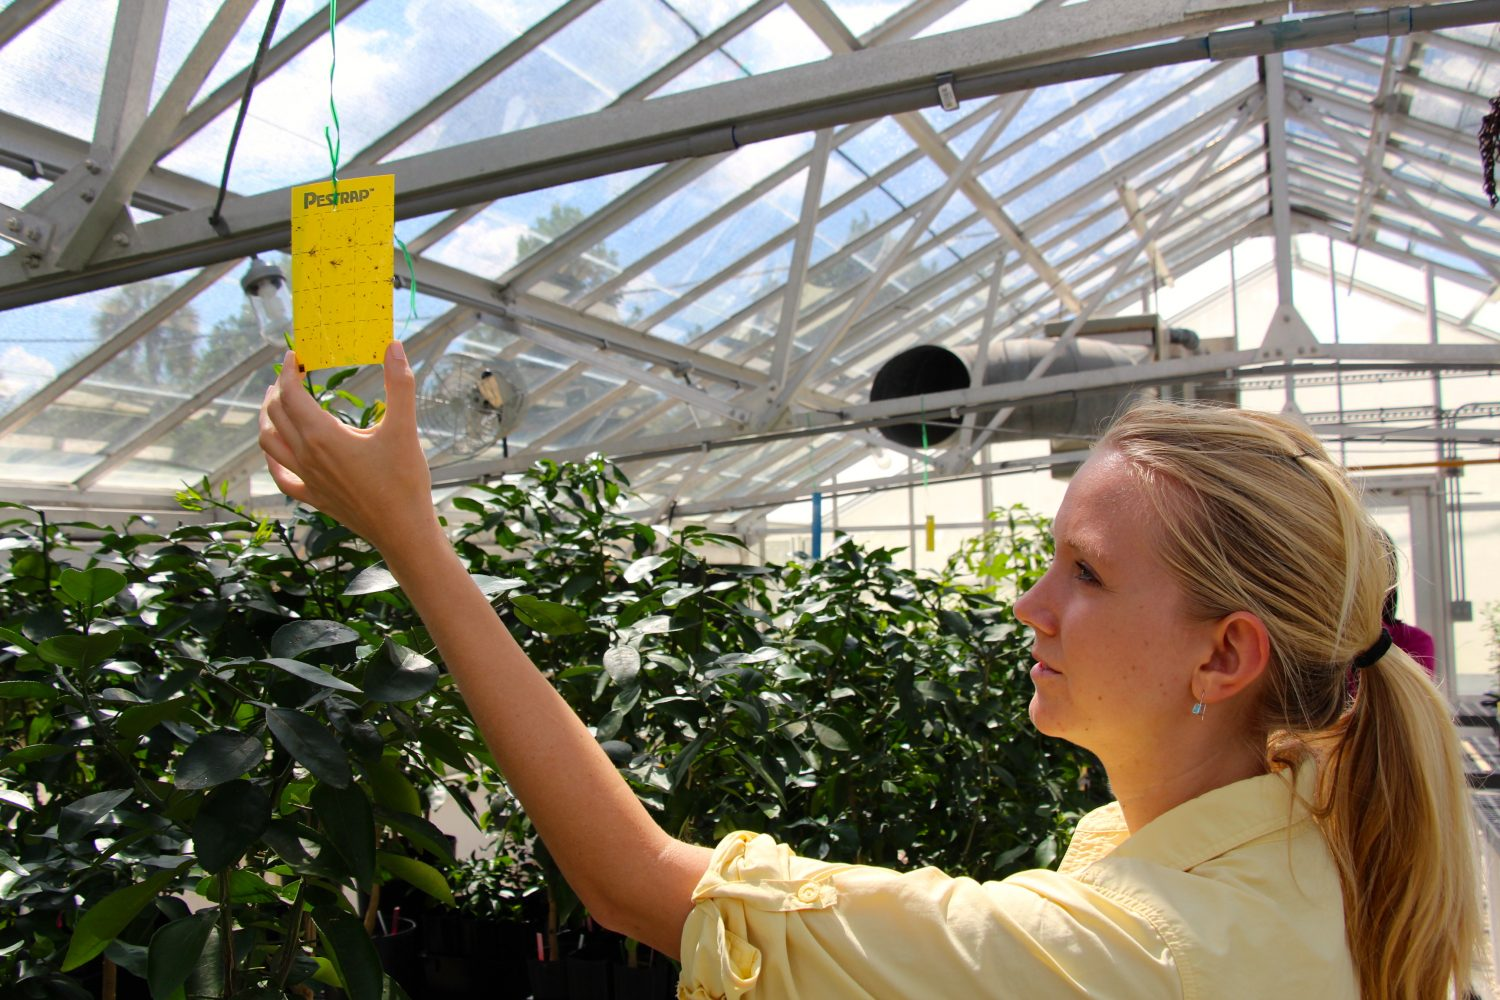 Two or three trees will be saved for further research after debugging in a greenhouse. There, the disease will be studied without the risk of spreading.